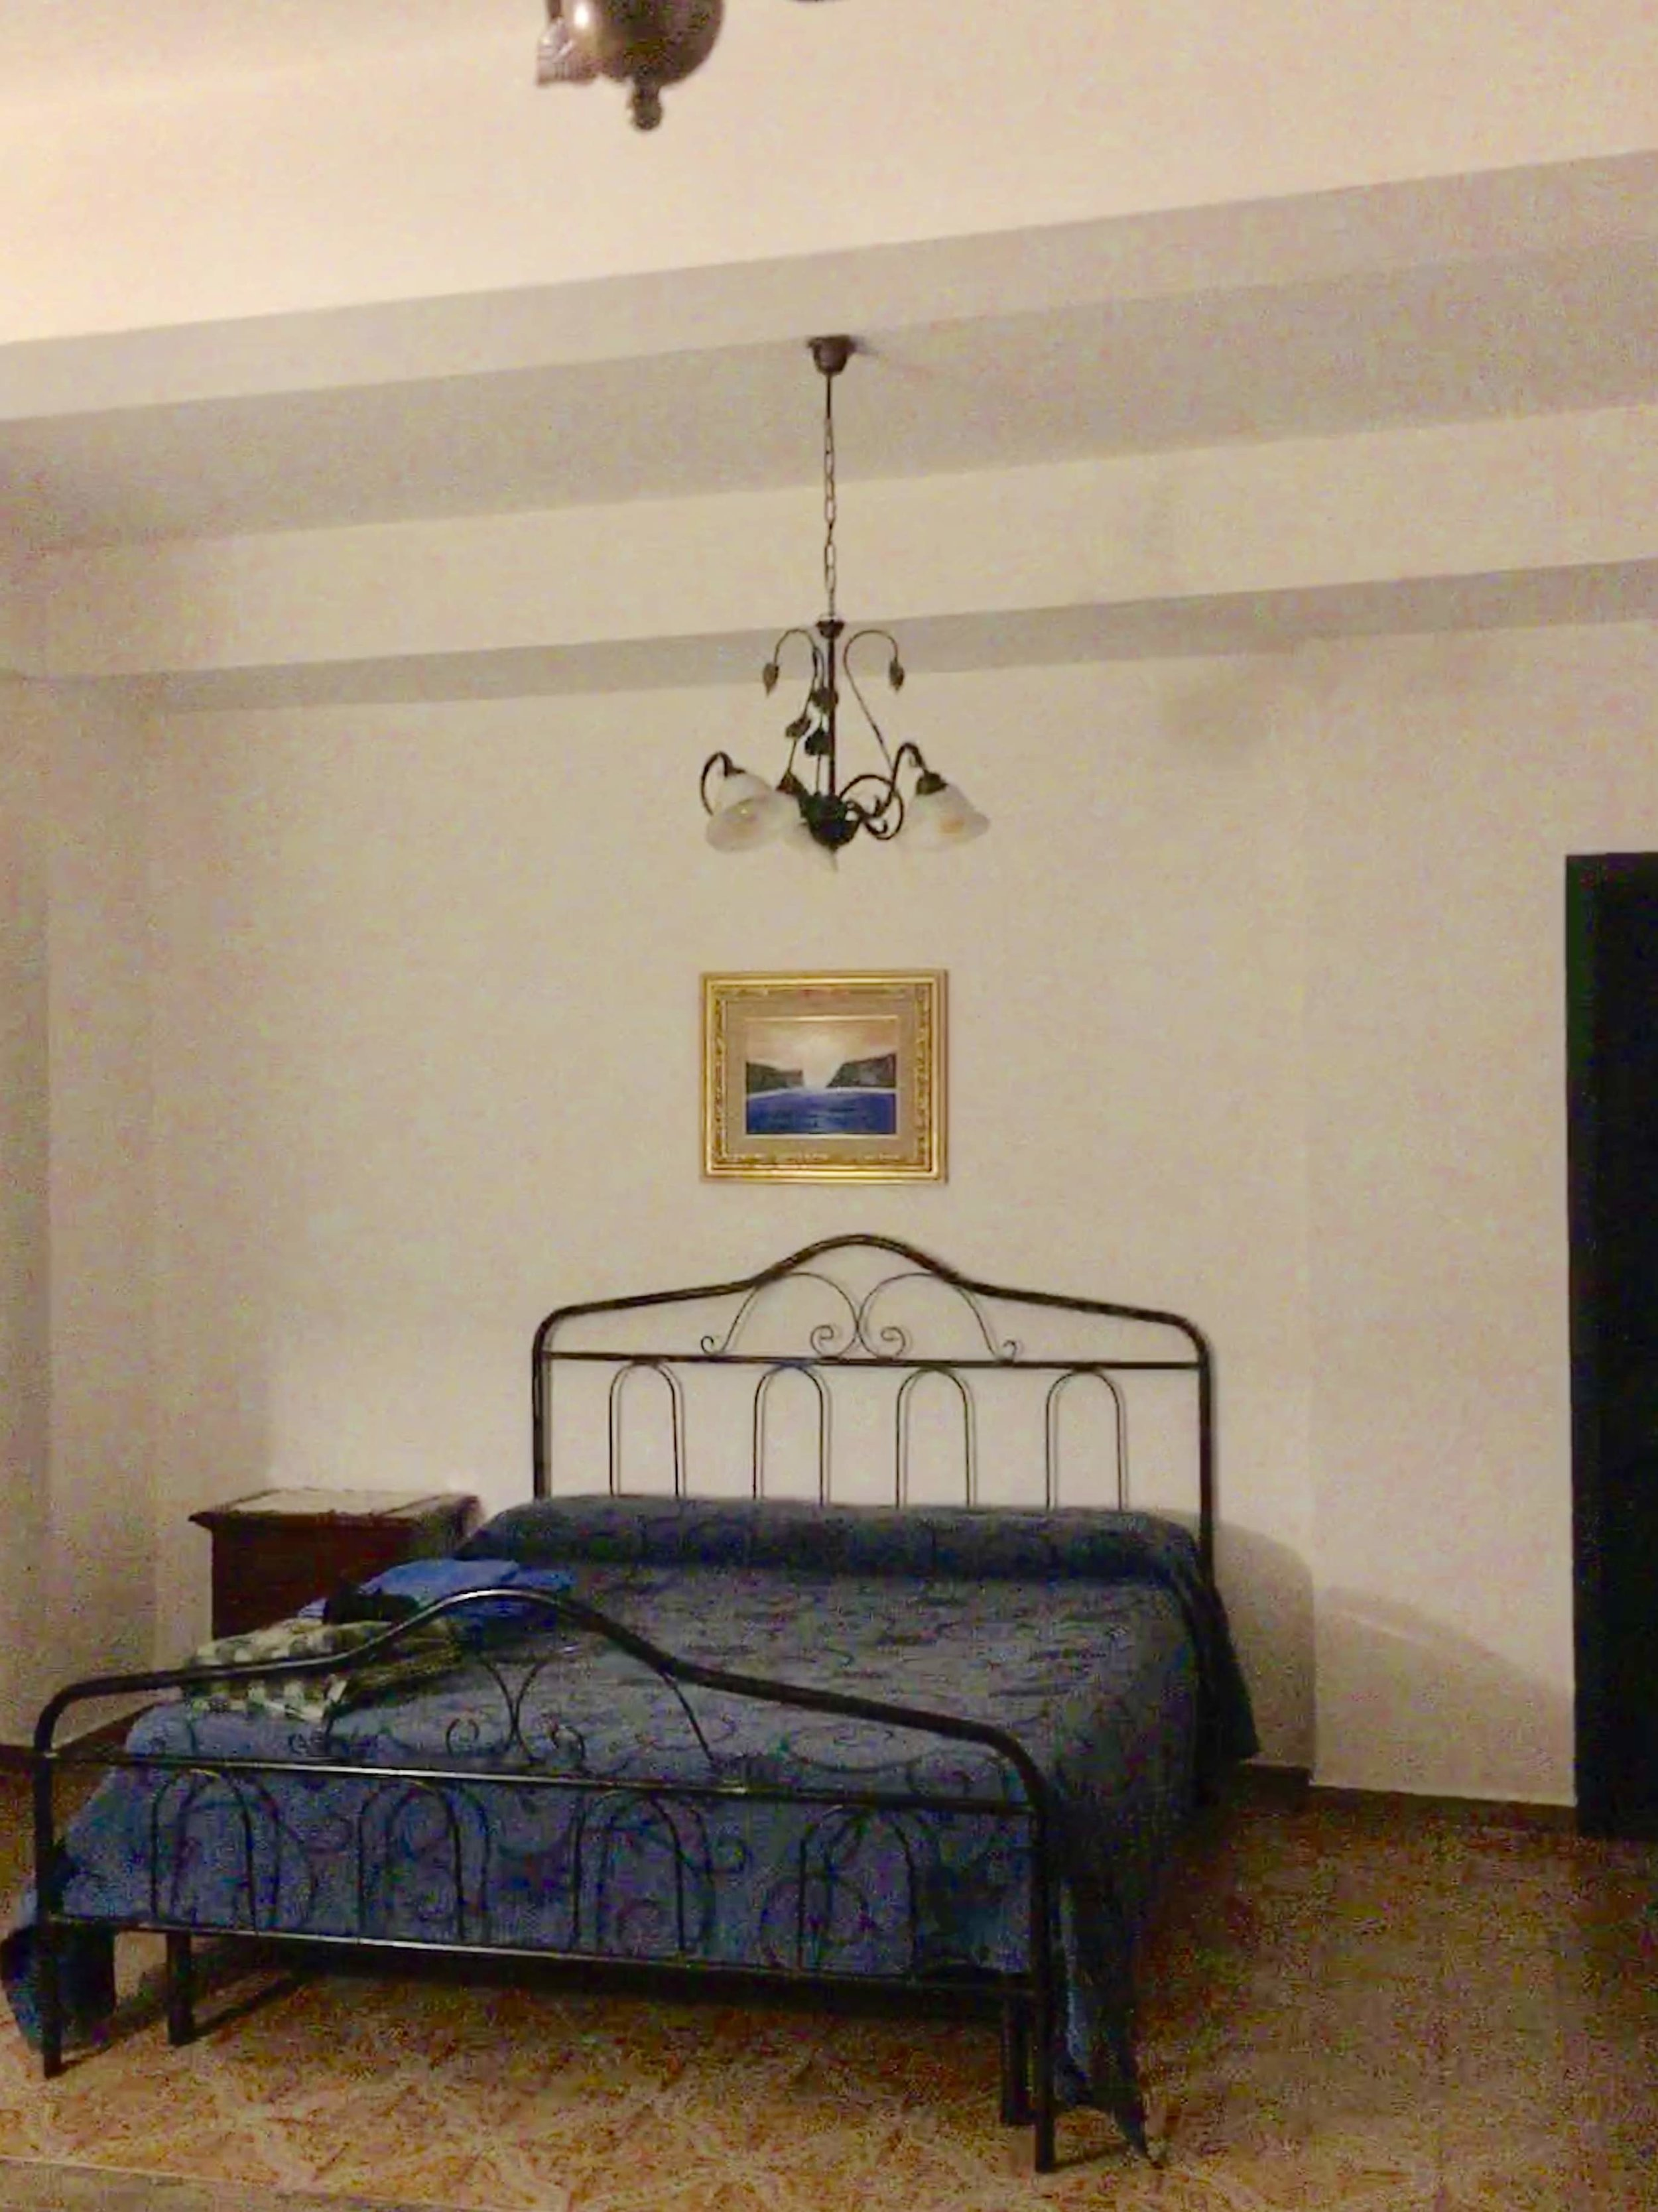 Simple and clean for about $50 per night